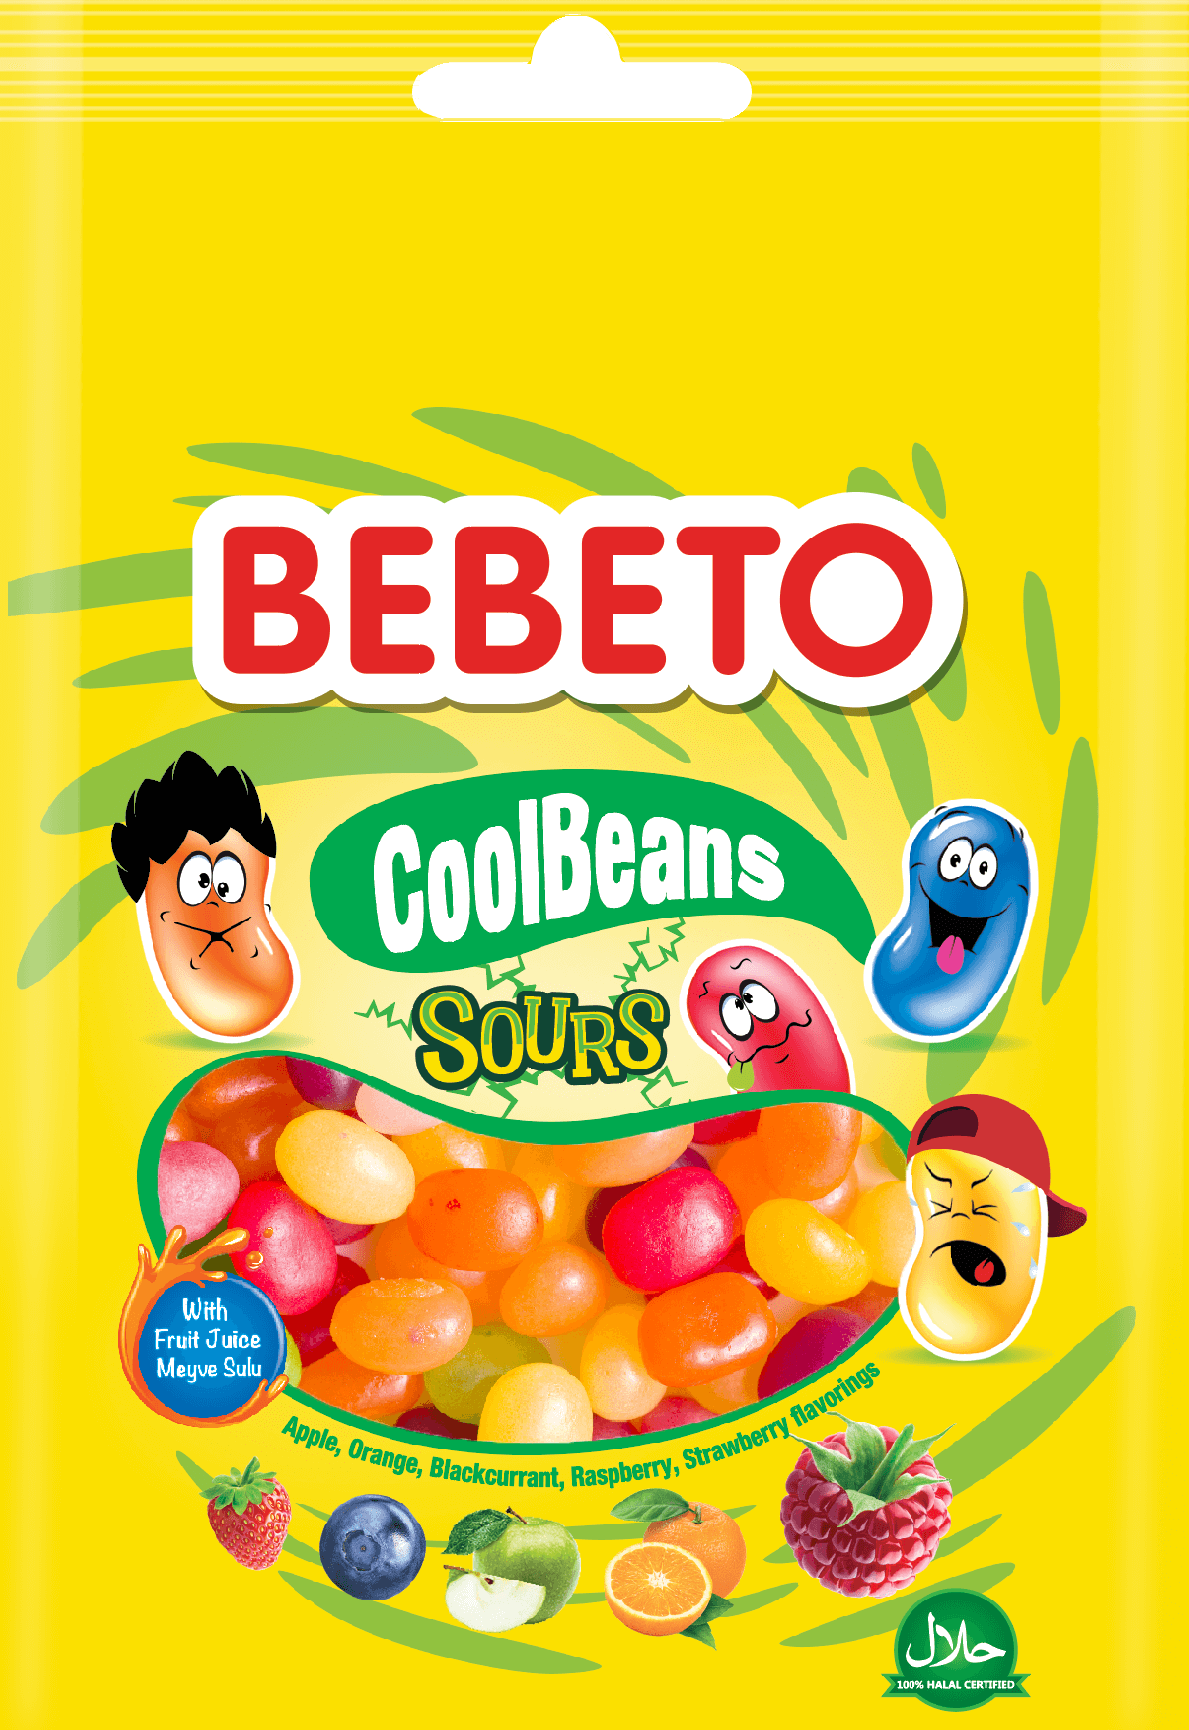 Bebeto Coolbeans sourd